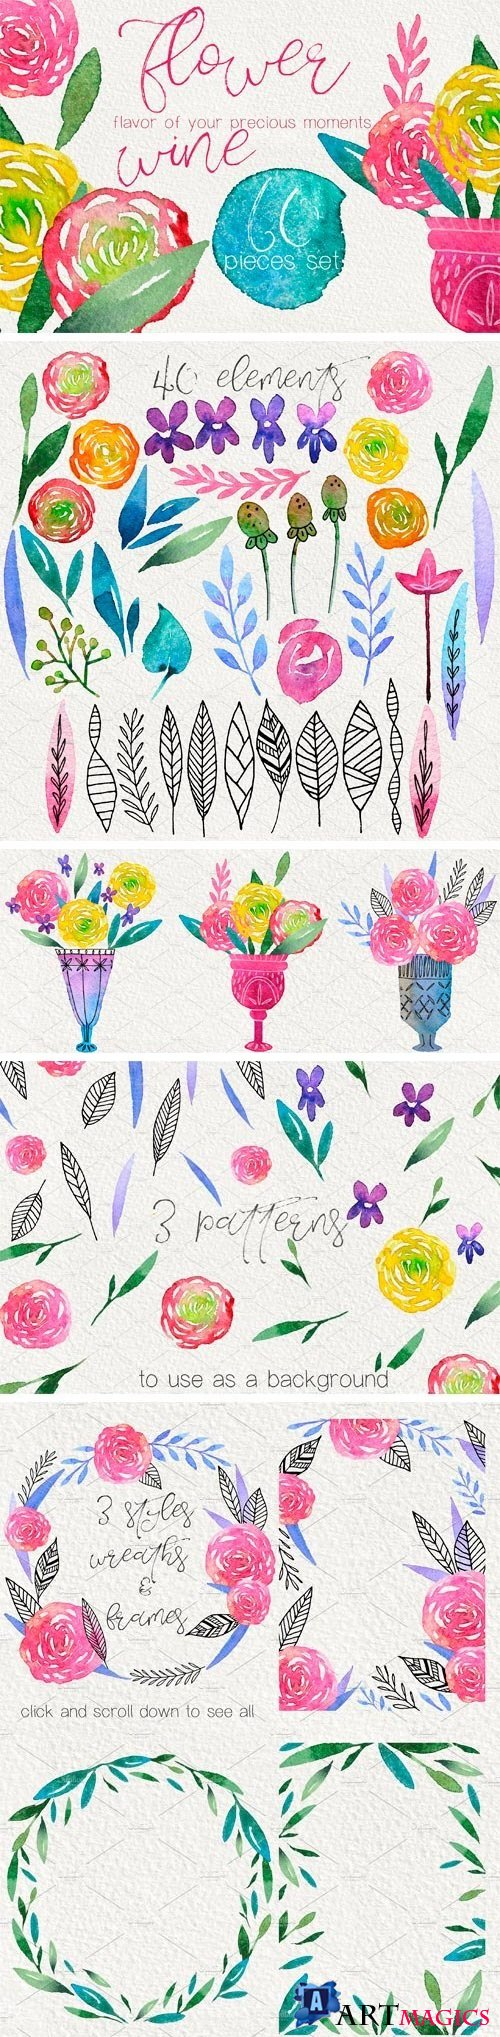 Flower Wine - Watercolor Design Kit - 2052627